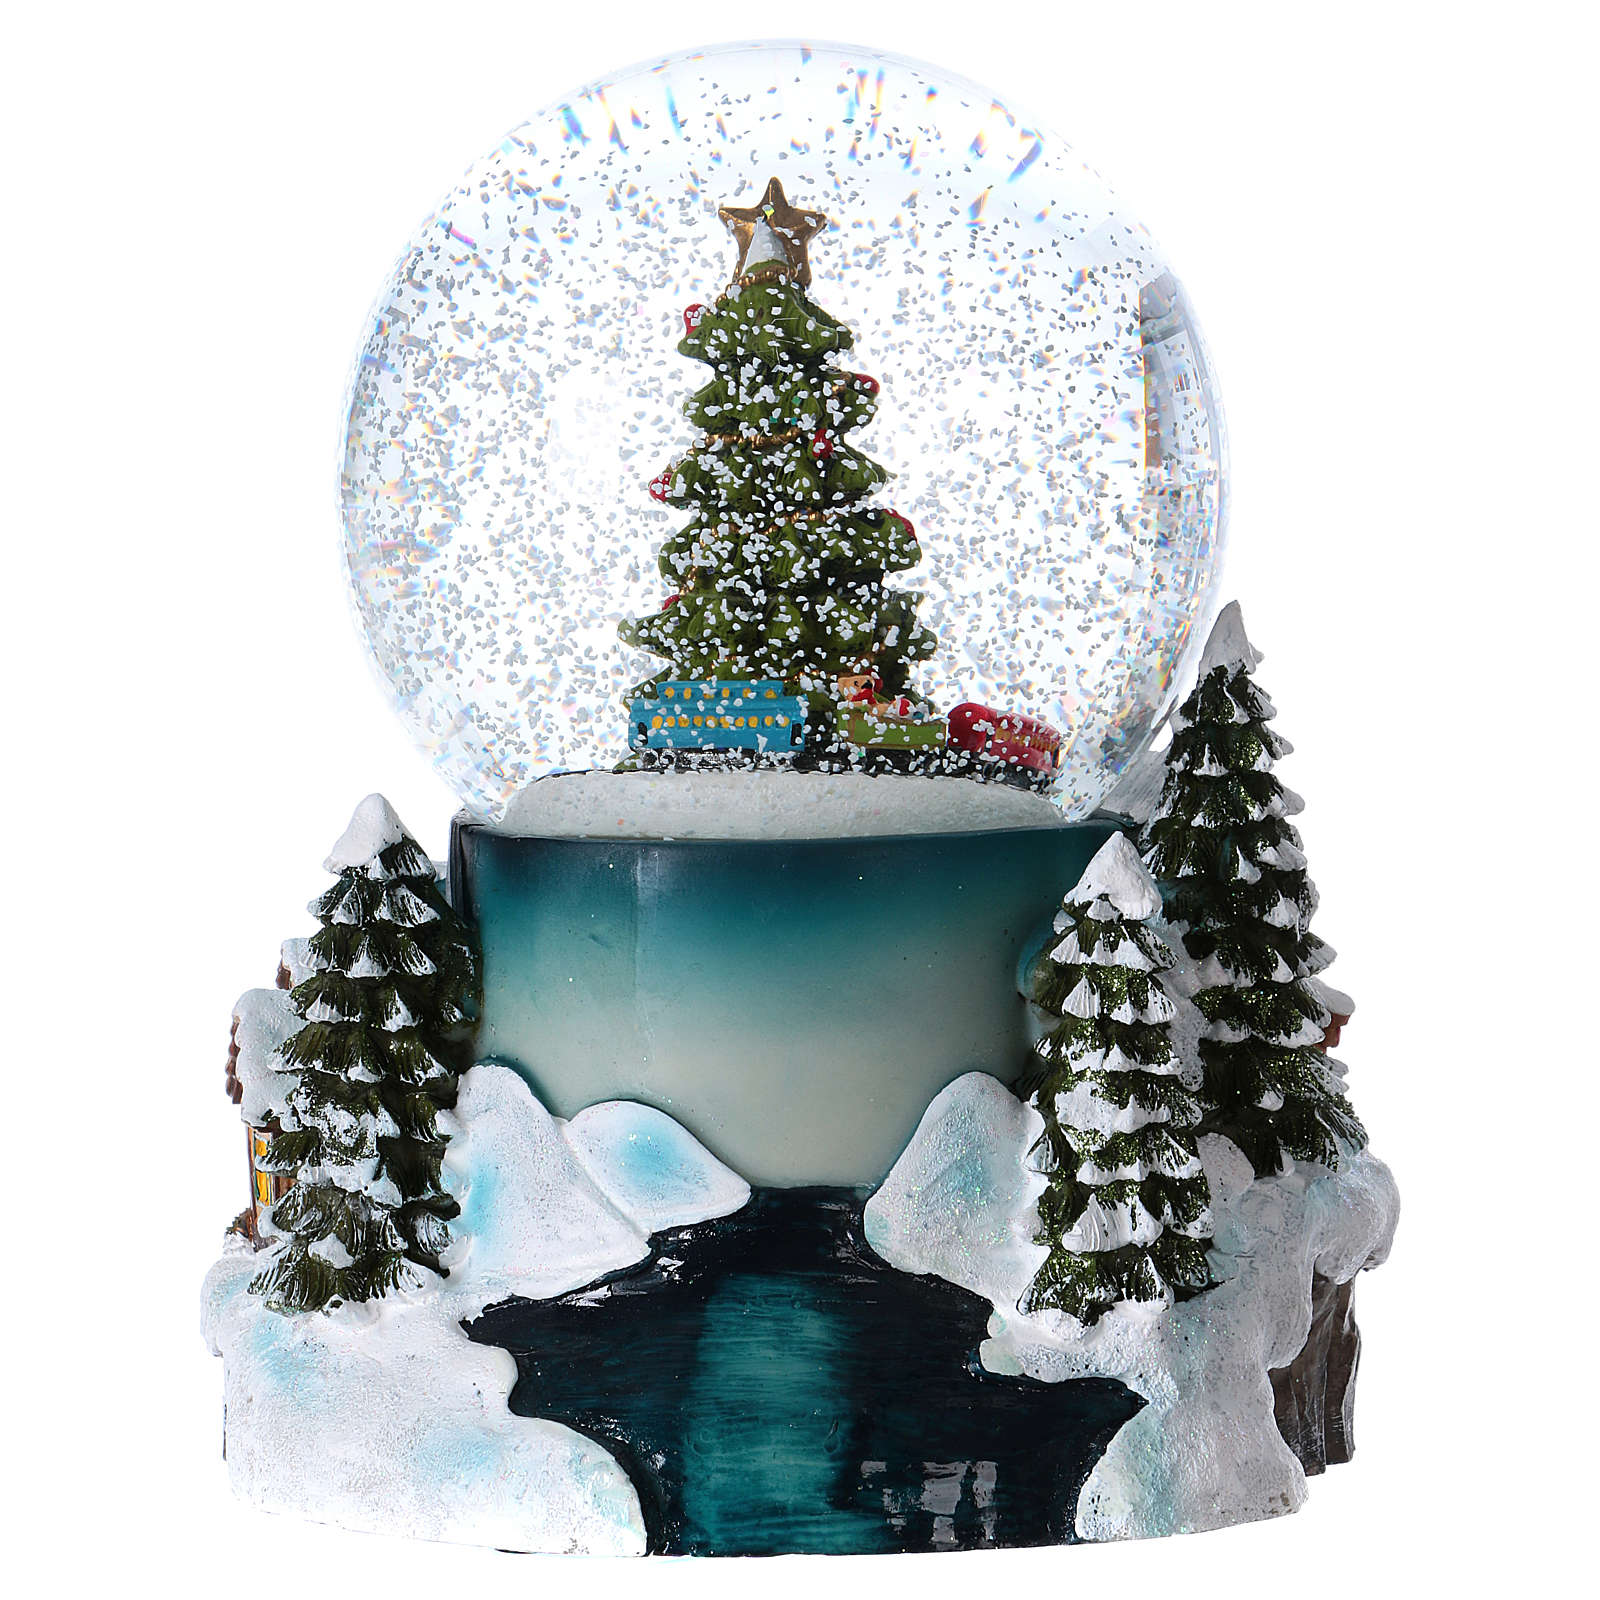 Snowing And Musical Christmas Tree: Illuminated Musical Christmas Snow Globe With Tree 20 Cm